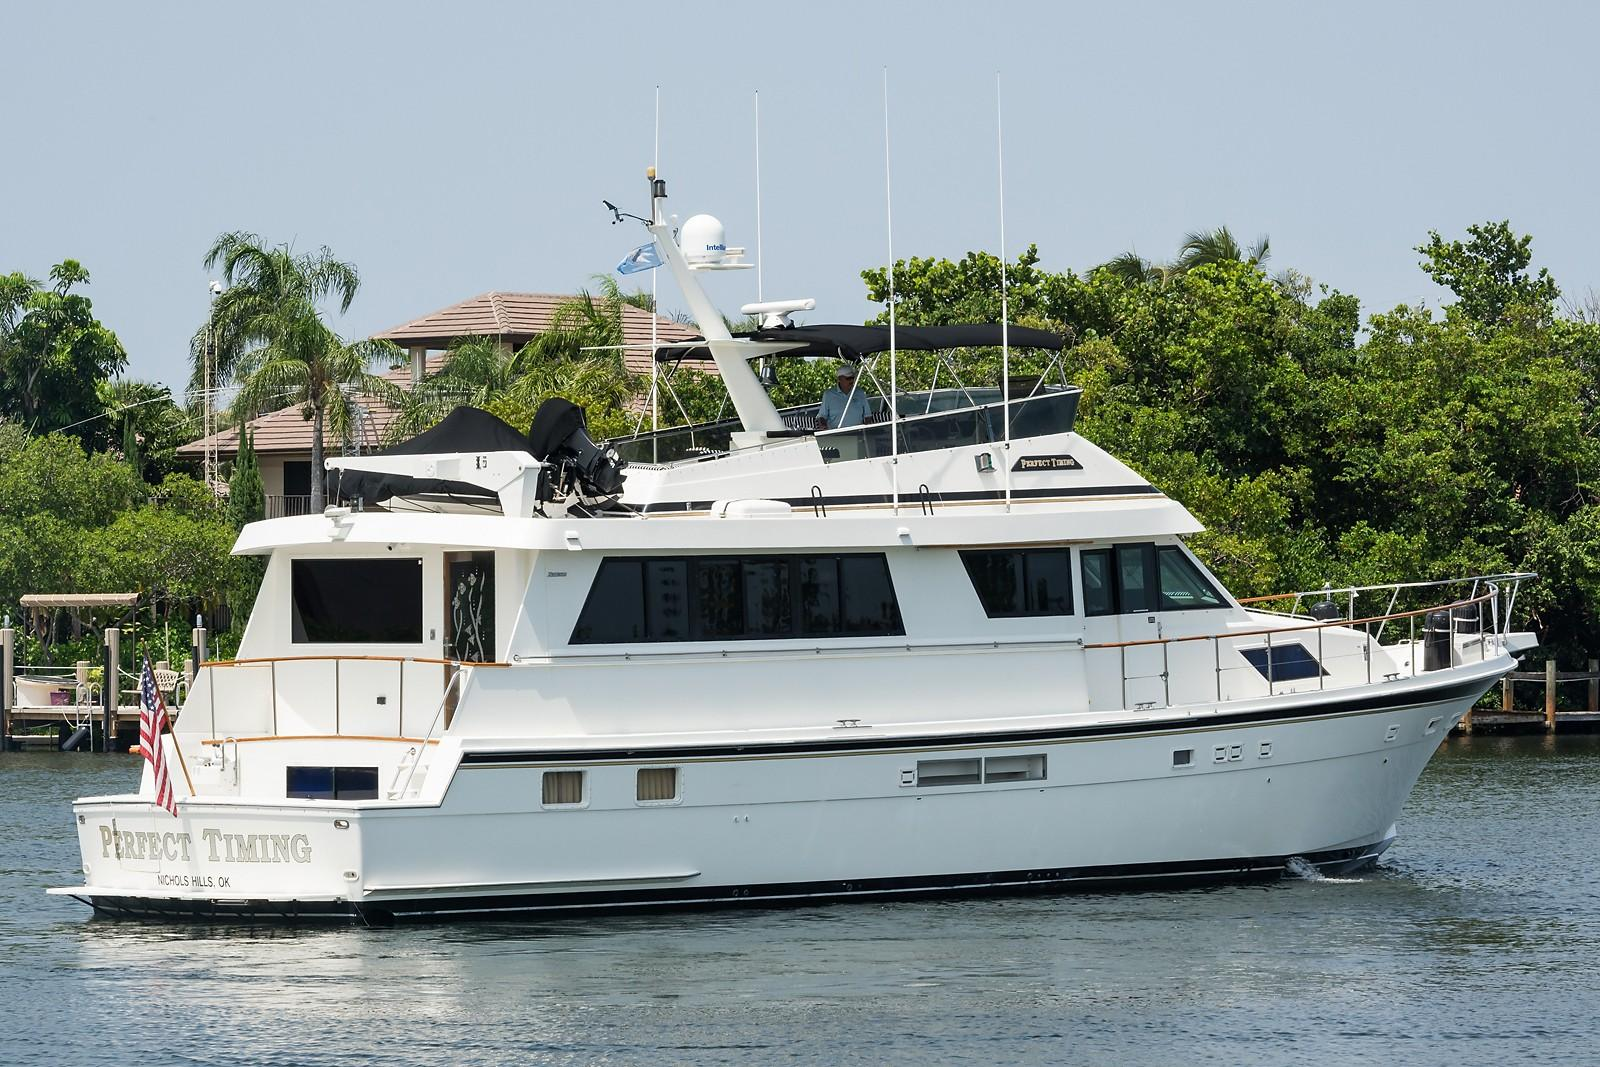 70 Hatteras Perfect Timing 1989 Lighthouse Point | Denison Yacht Sales